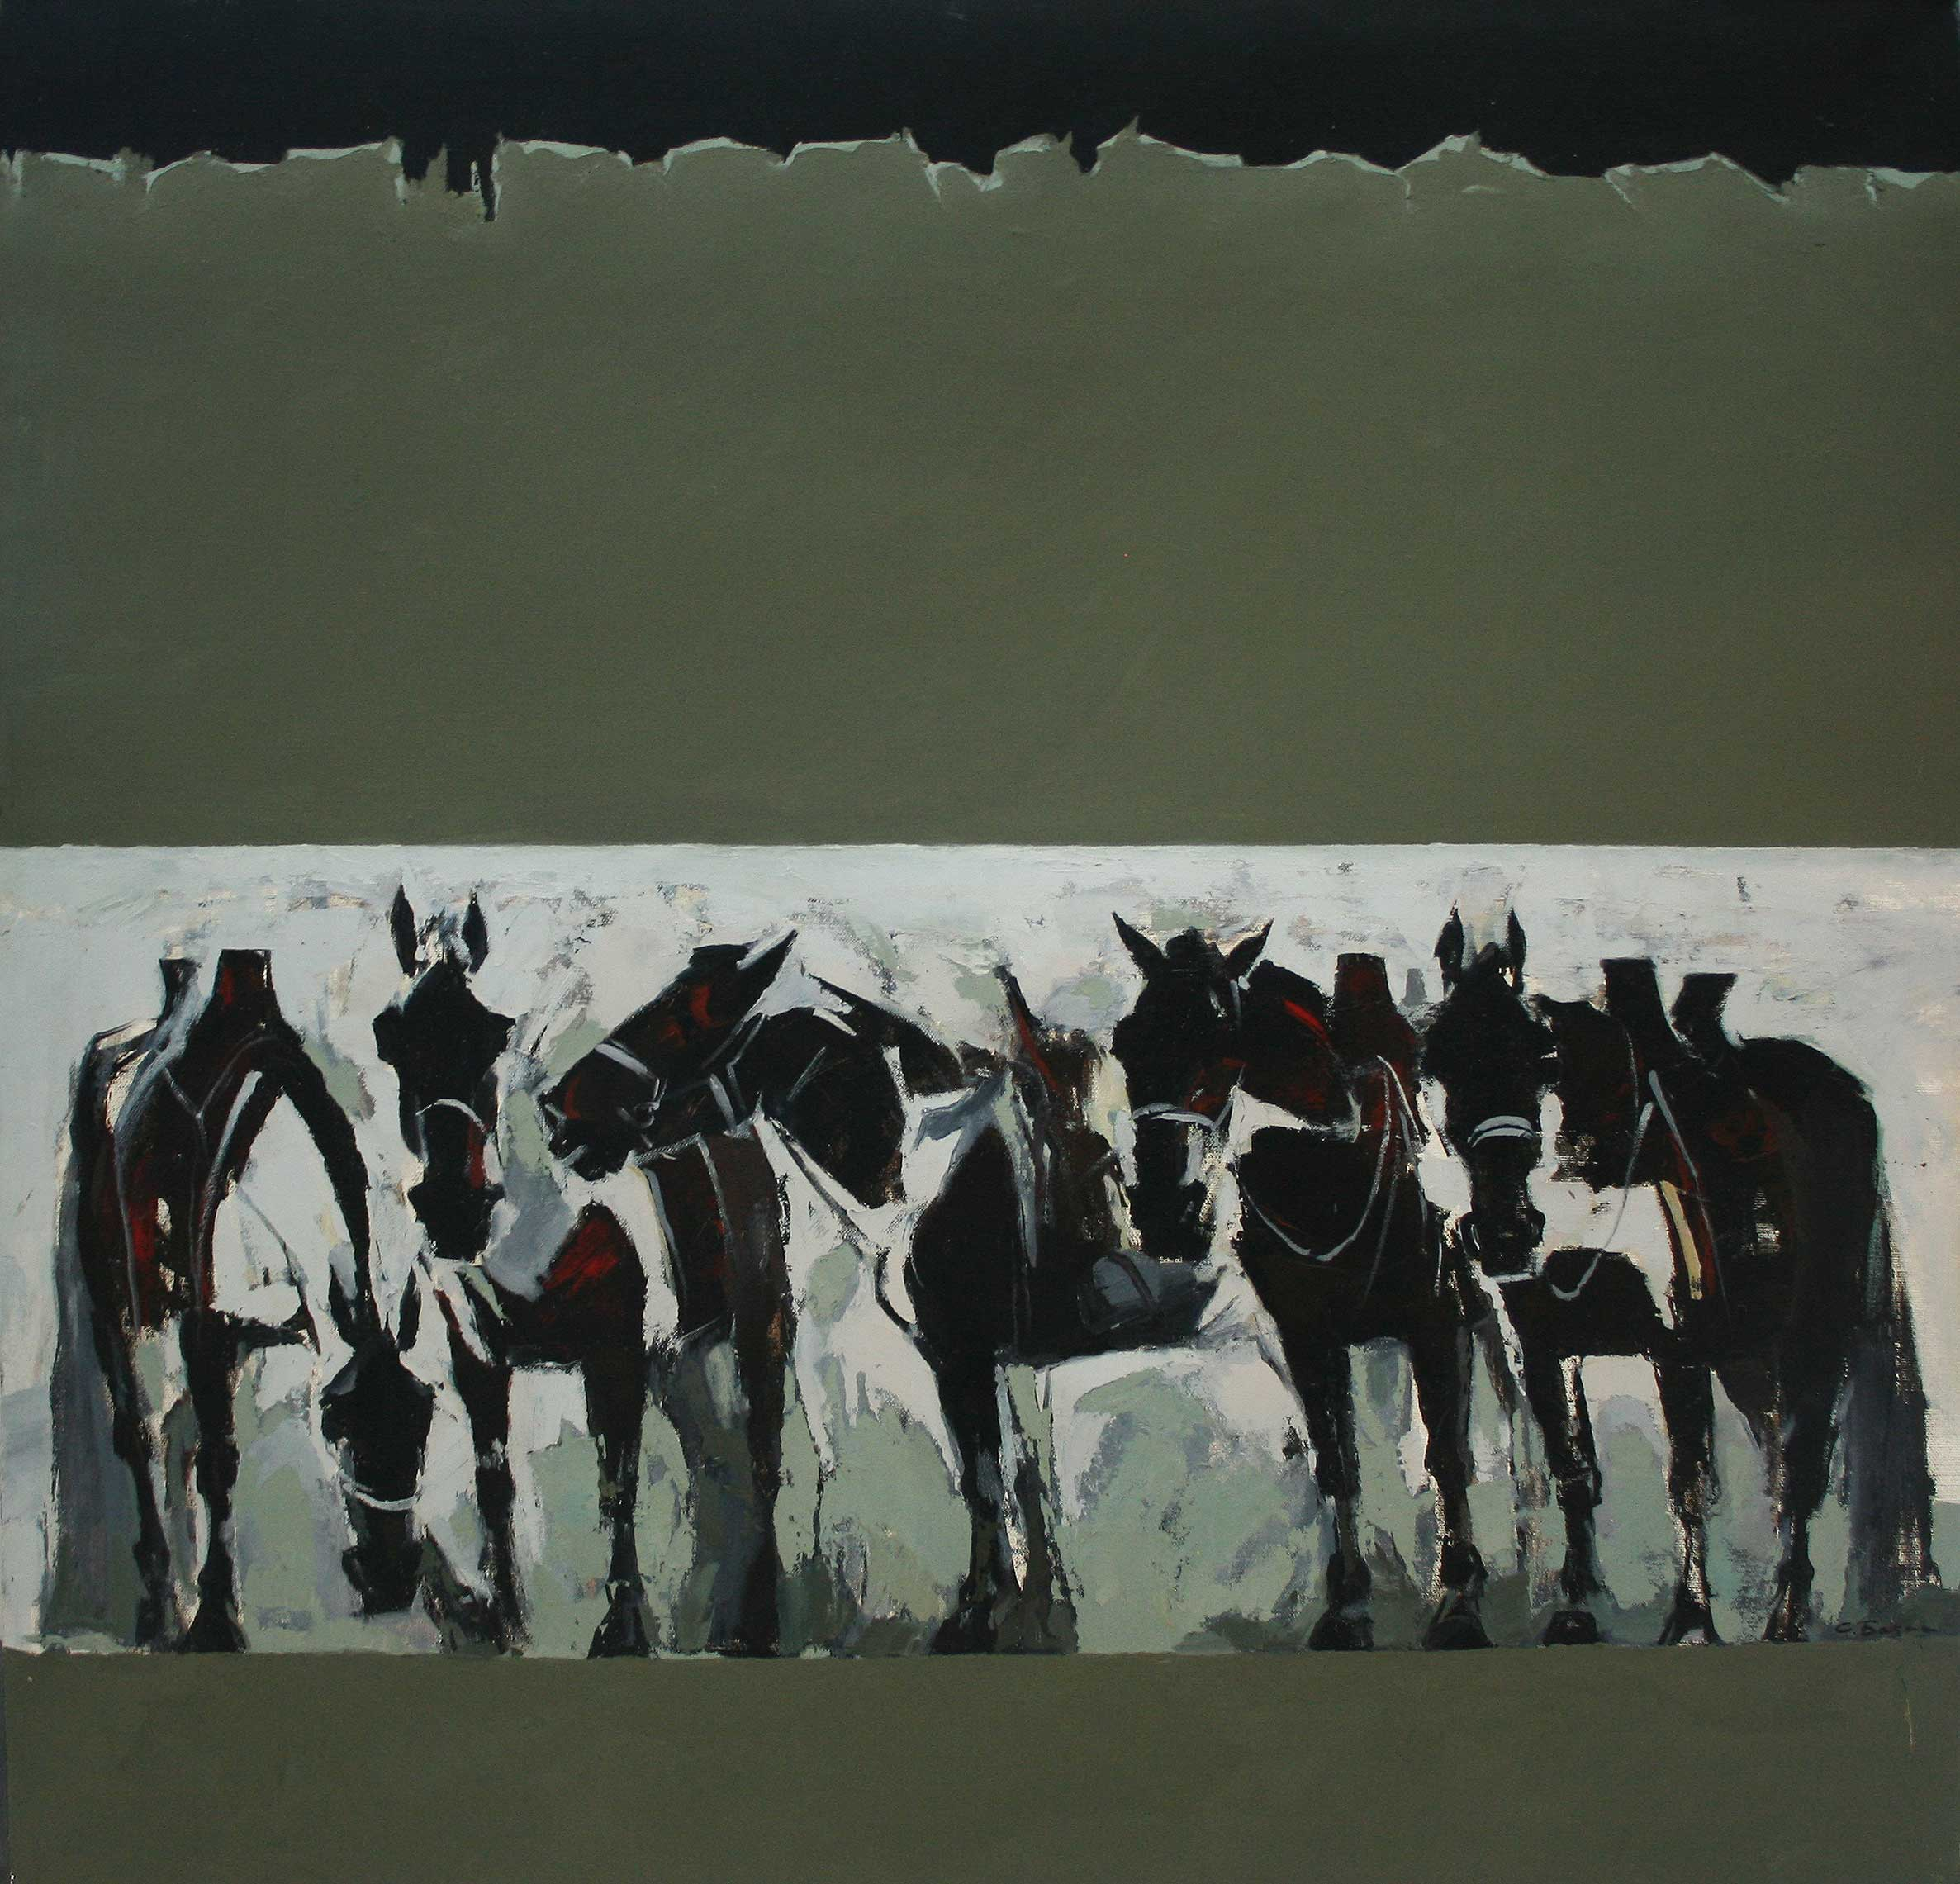 Horses in a black and white painting